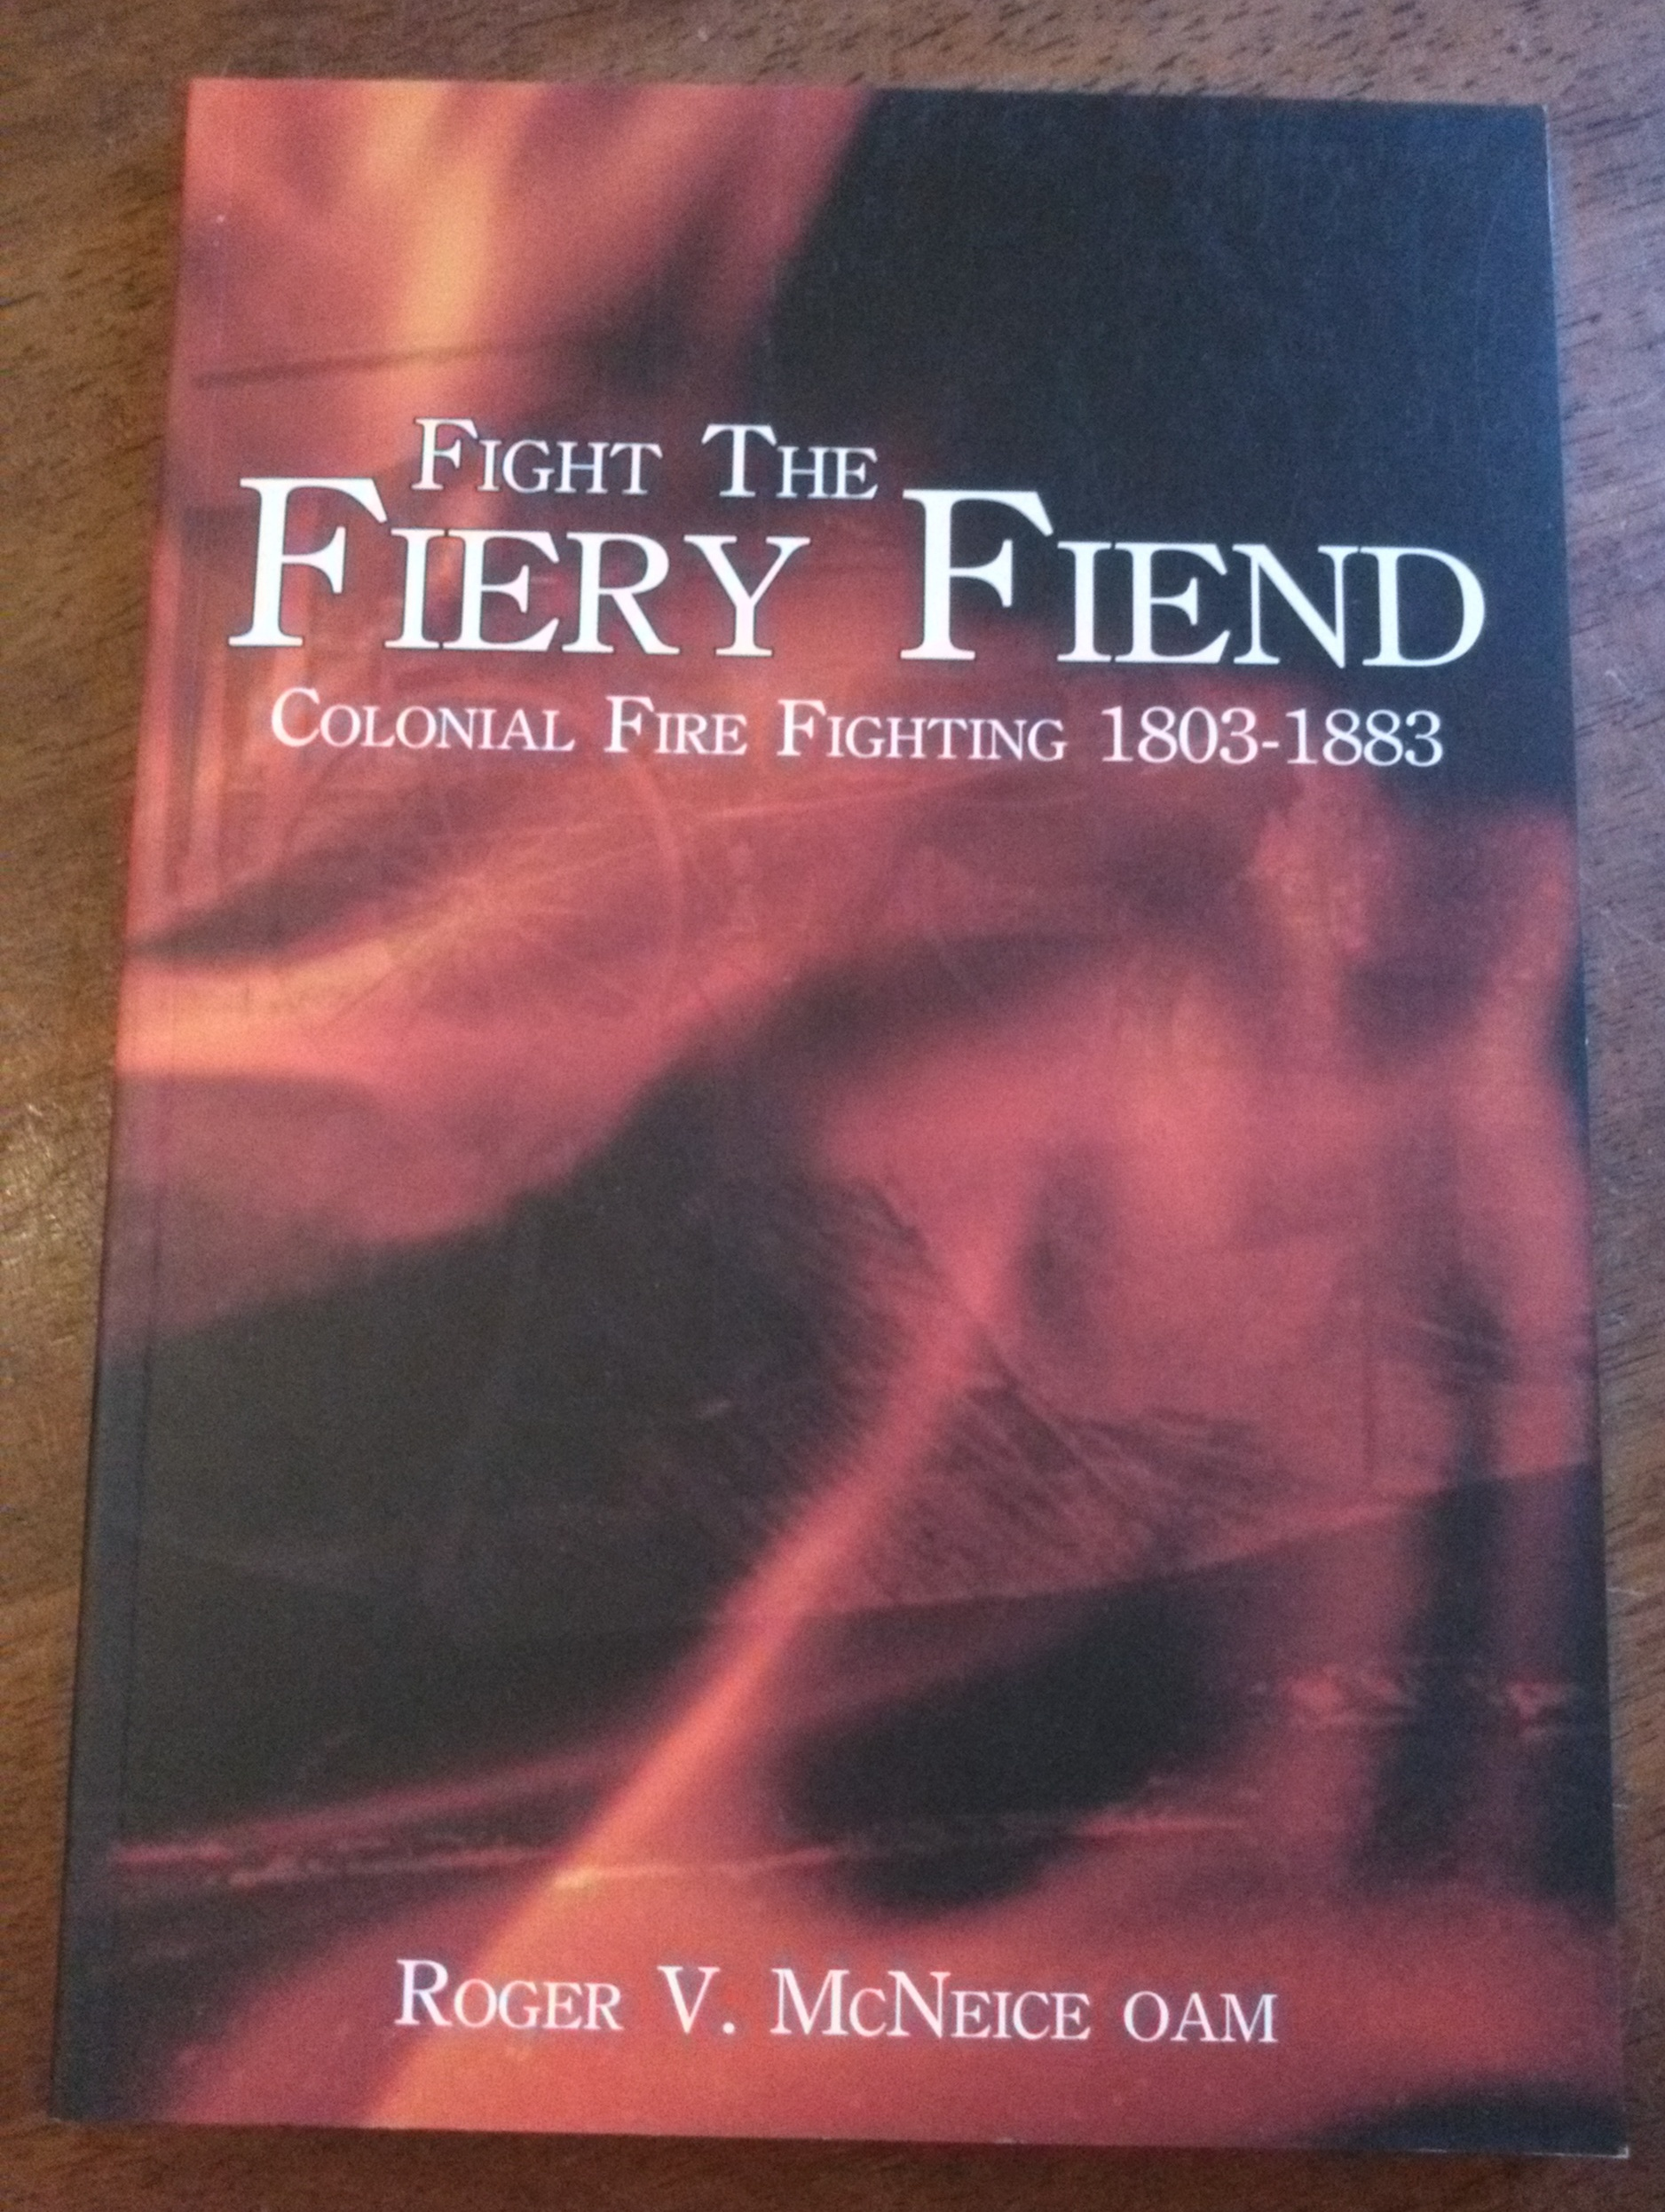 Fight the Fiery Fiend - Colonial Fire Fighting 1803-1883